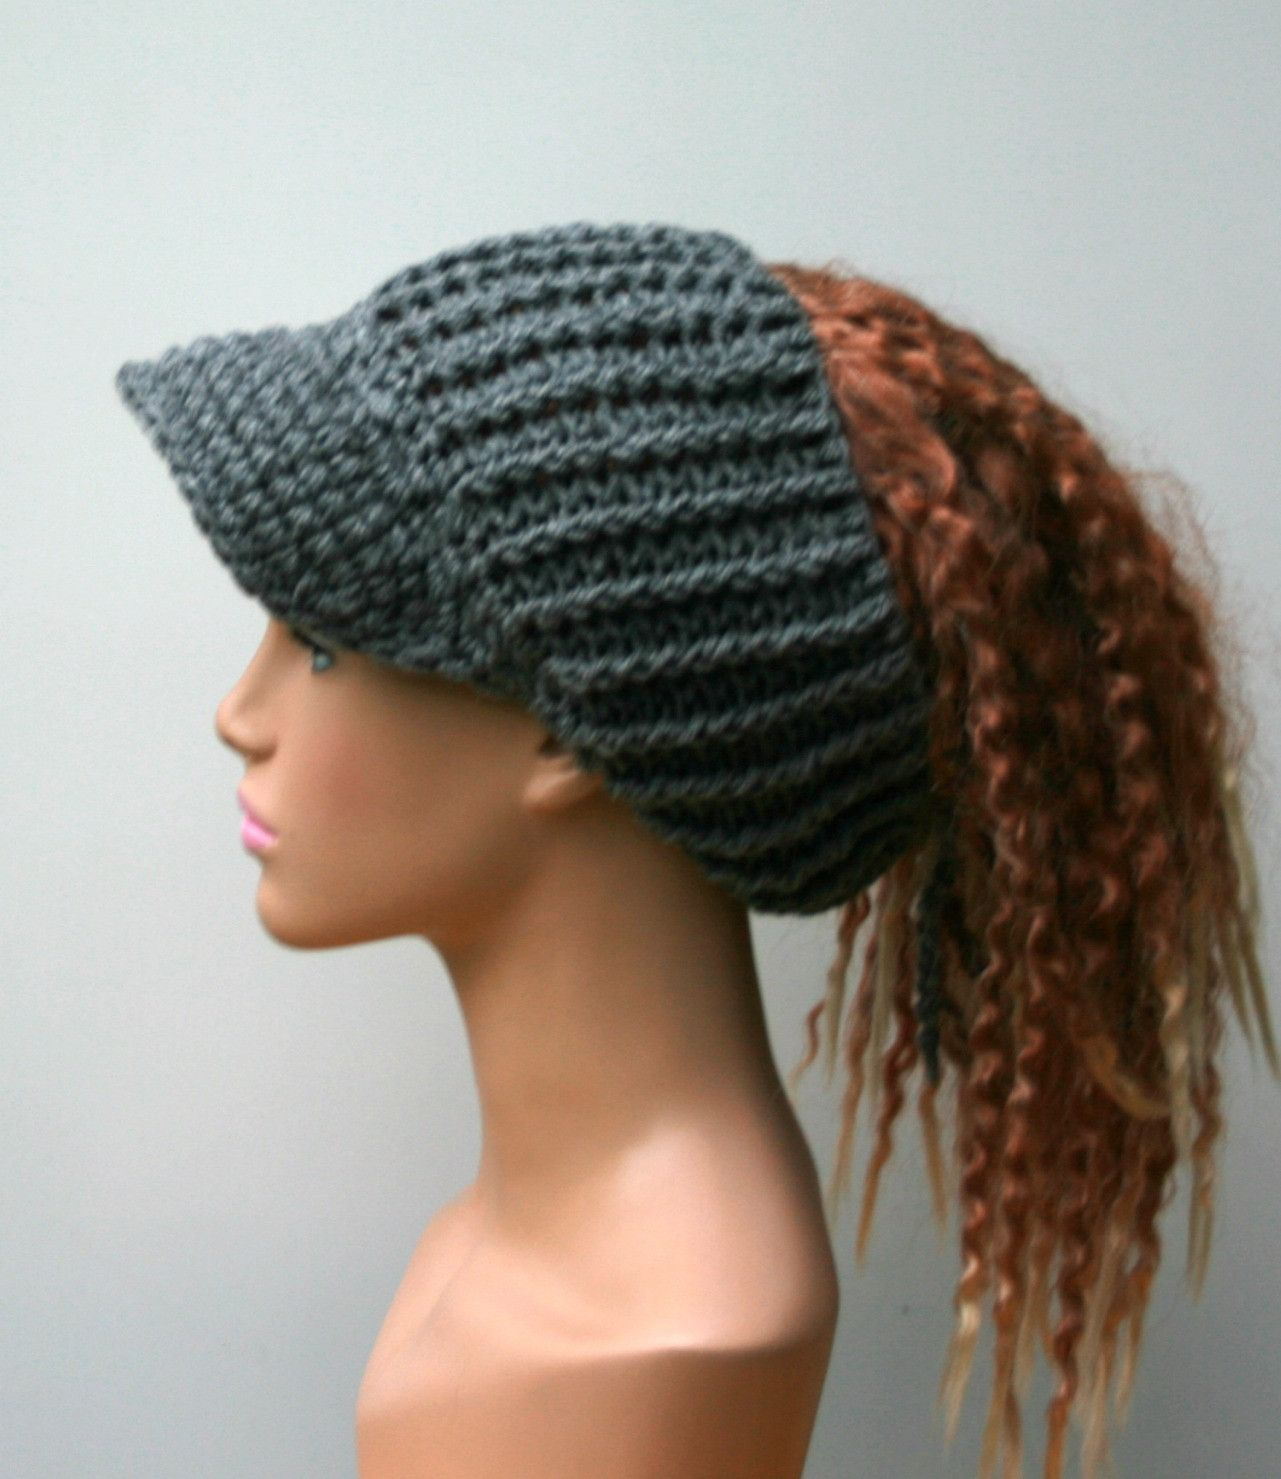 Heather gray ponytail hat visor dread tube cap billed dread tube heather gray ponytail hat visor dread tube cap billed dread tube dread band bankloansurffo Images